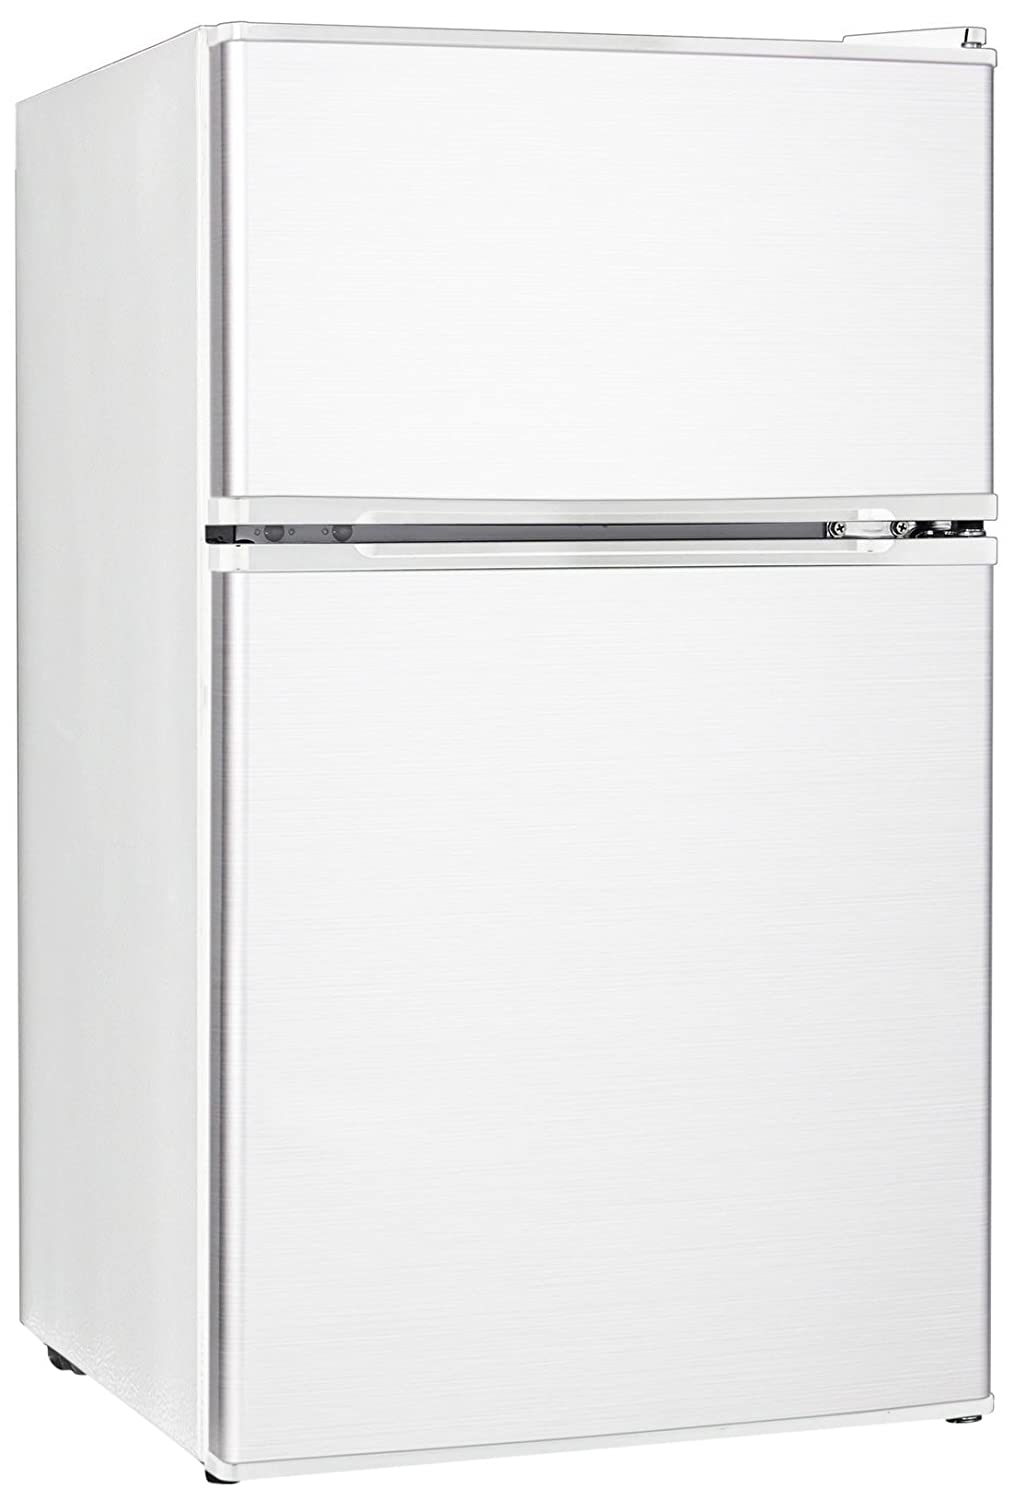 midea WHD-113FW1 Double Reversible Door Refrigerator and Freezer, 3.1 Cubic Feet, White